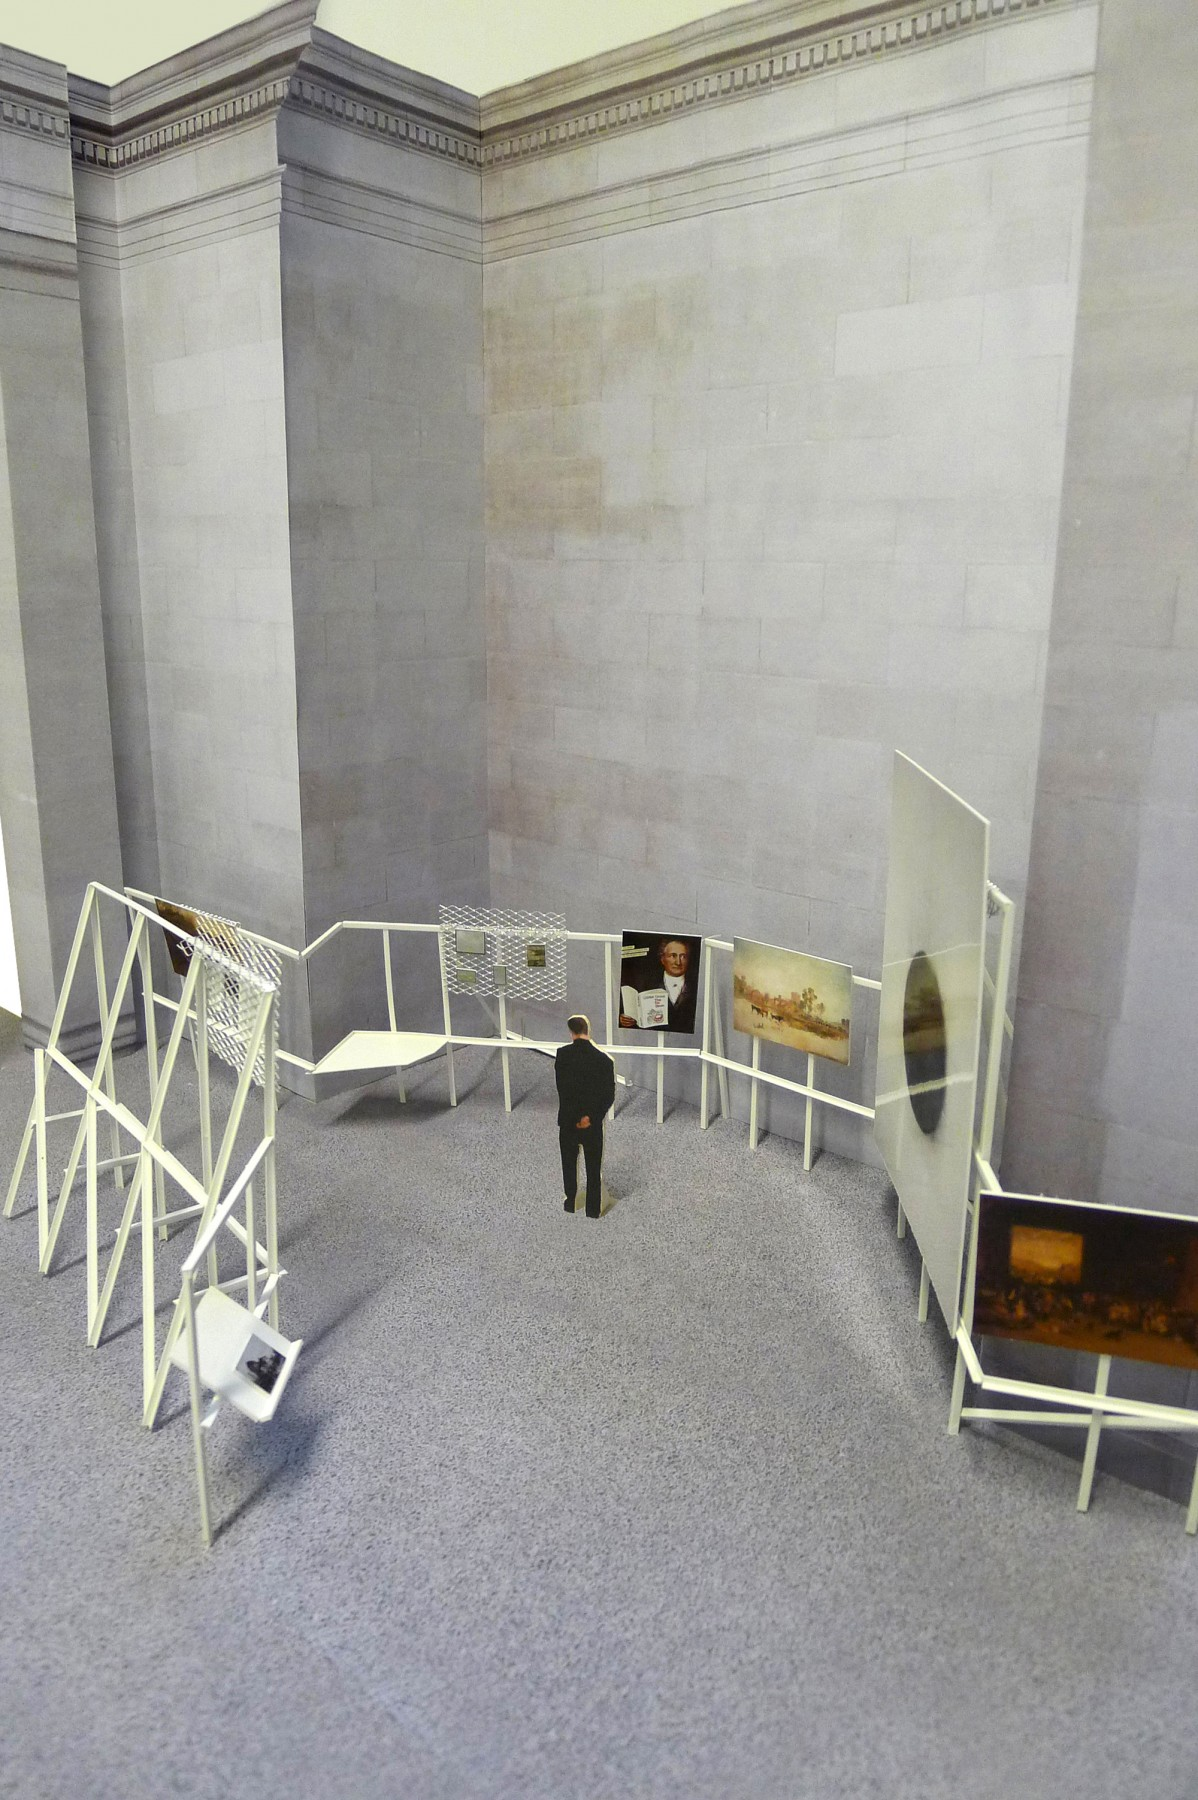 Patrick-Keiller-Tate-Britain-London-design-exhibition-Jamie-Fobert-Architects-Duveen-gallery-Robinson-Institute-model